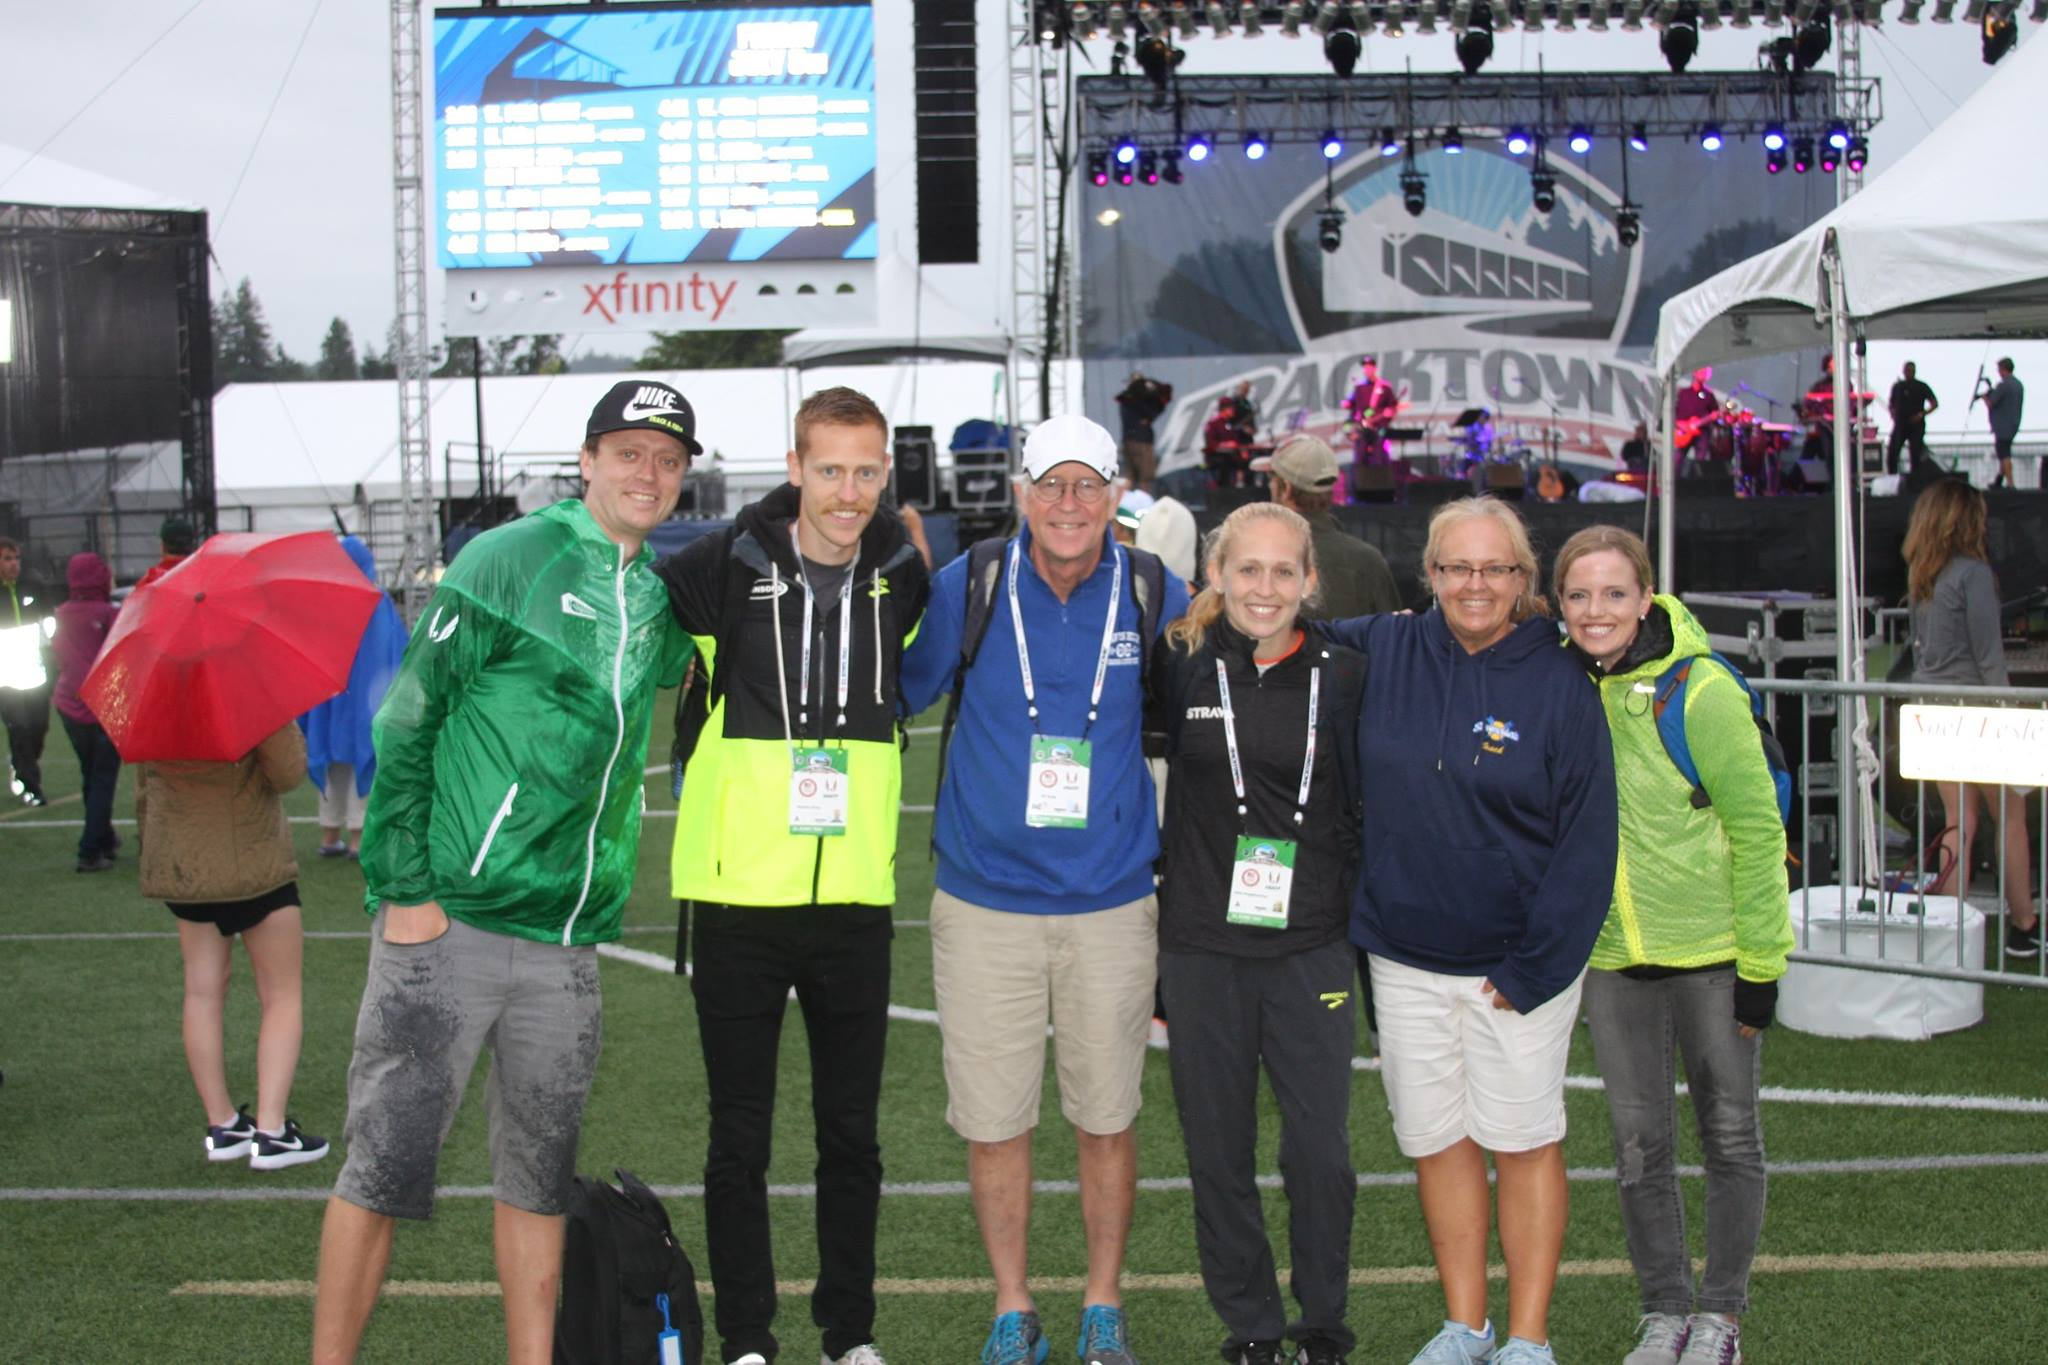 Post Olympic Trials 5k, my support crew, helping me turn that frown upside down!